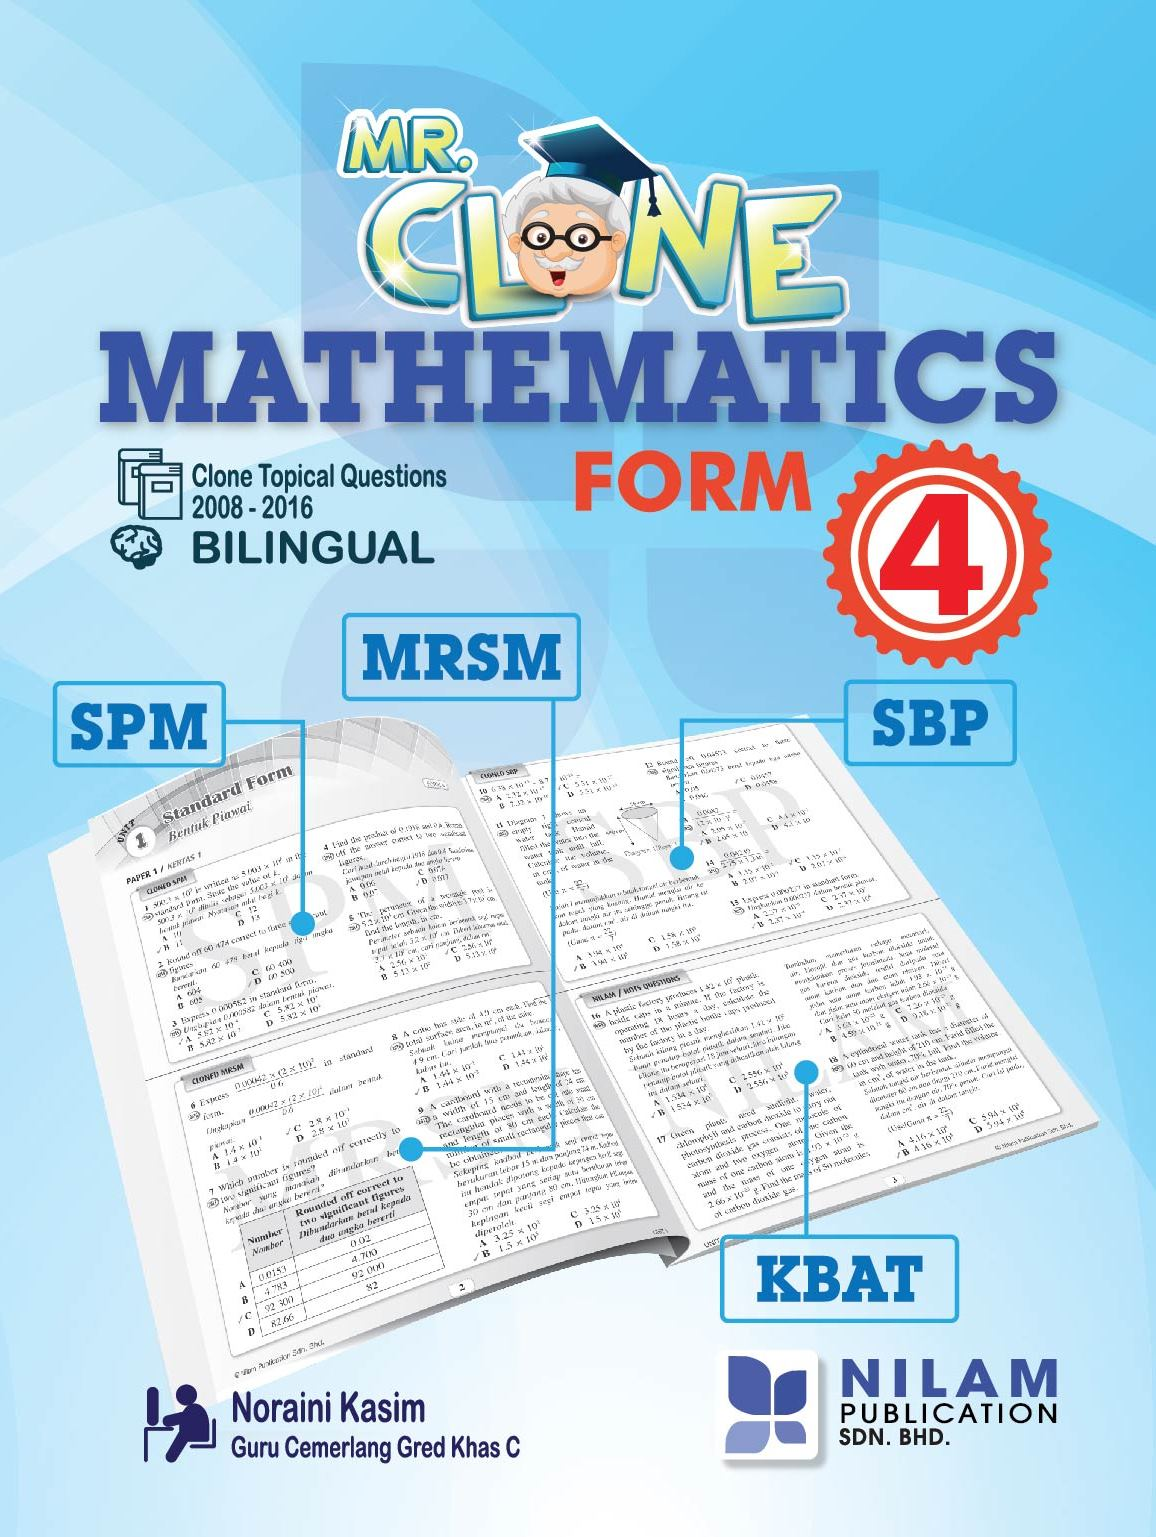 Mr. Clone Mathematics Form 4 (2017)